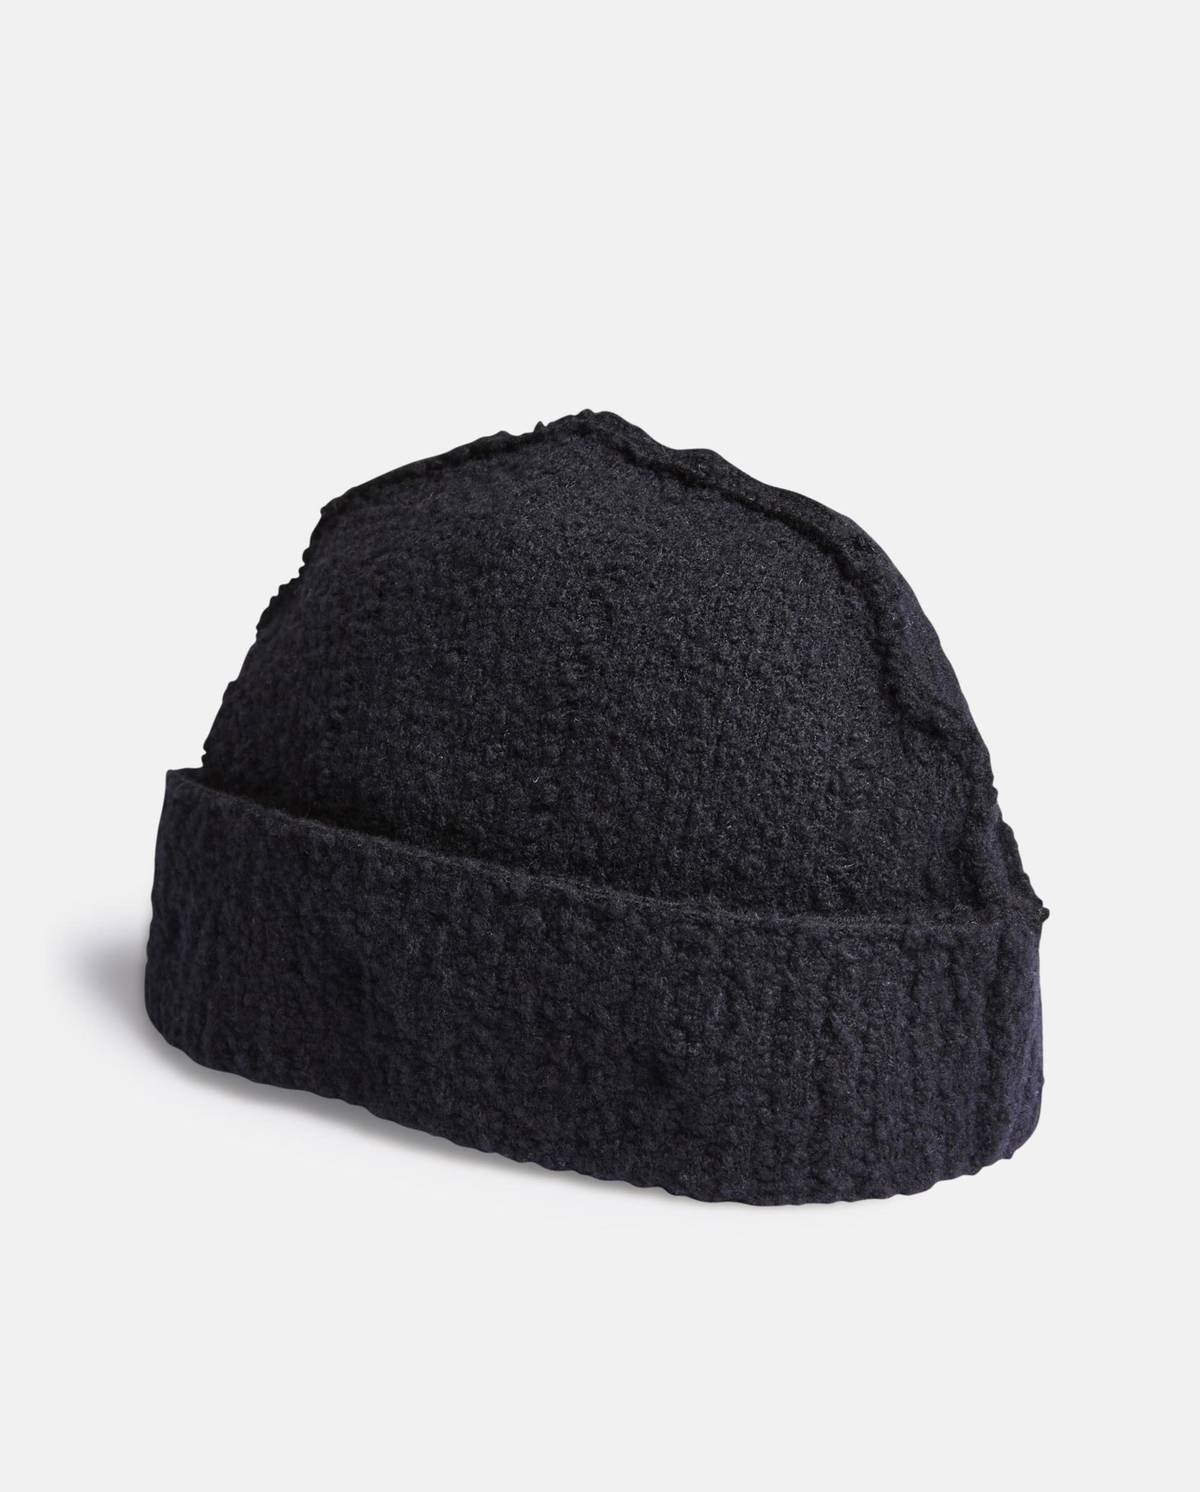 Craig Green Craig Green ribbed knit beanie Hat Size one size - Hats for  Sale - Grailed cc6f02845c3b